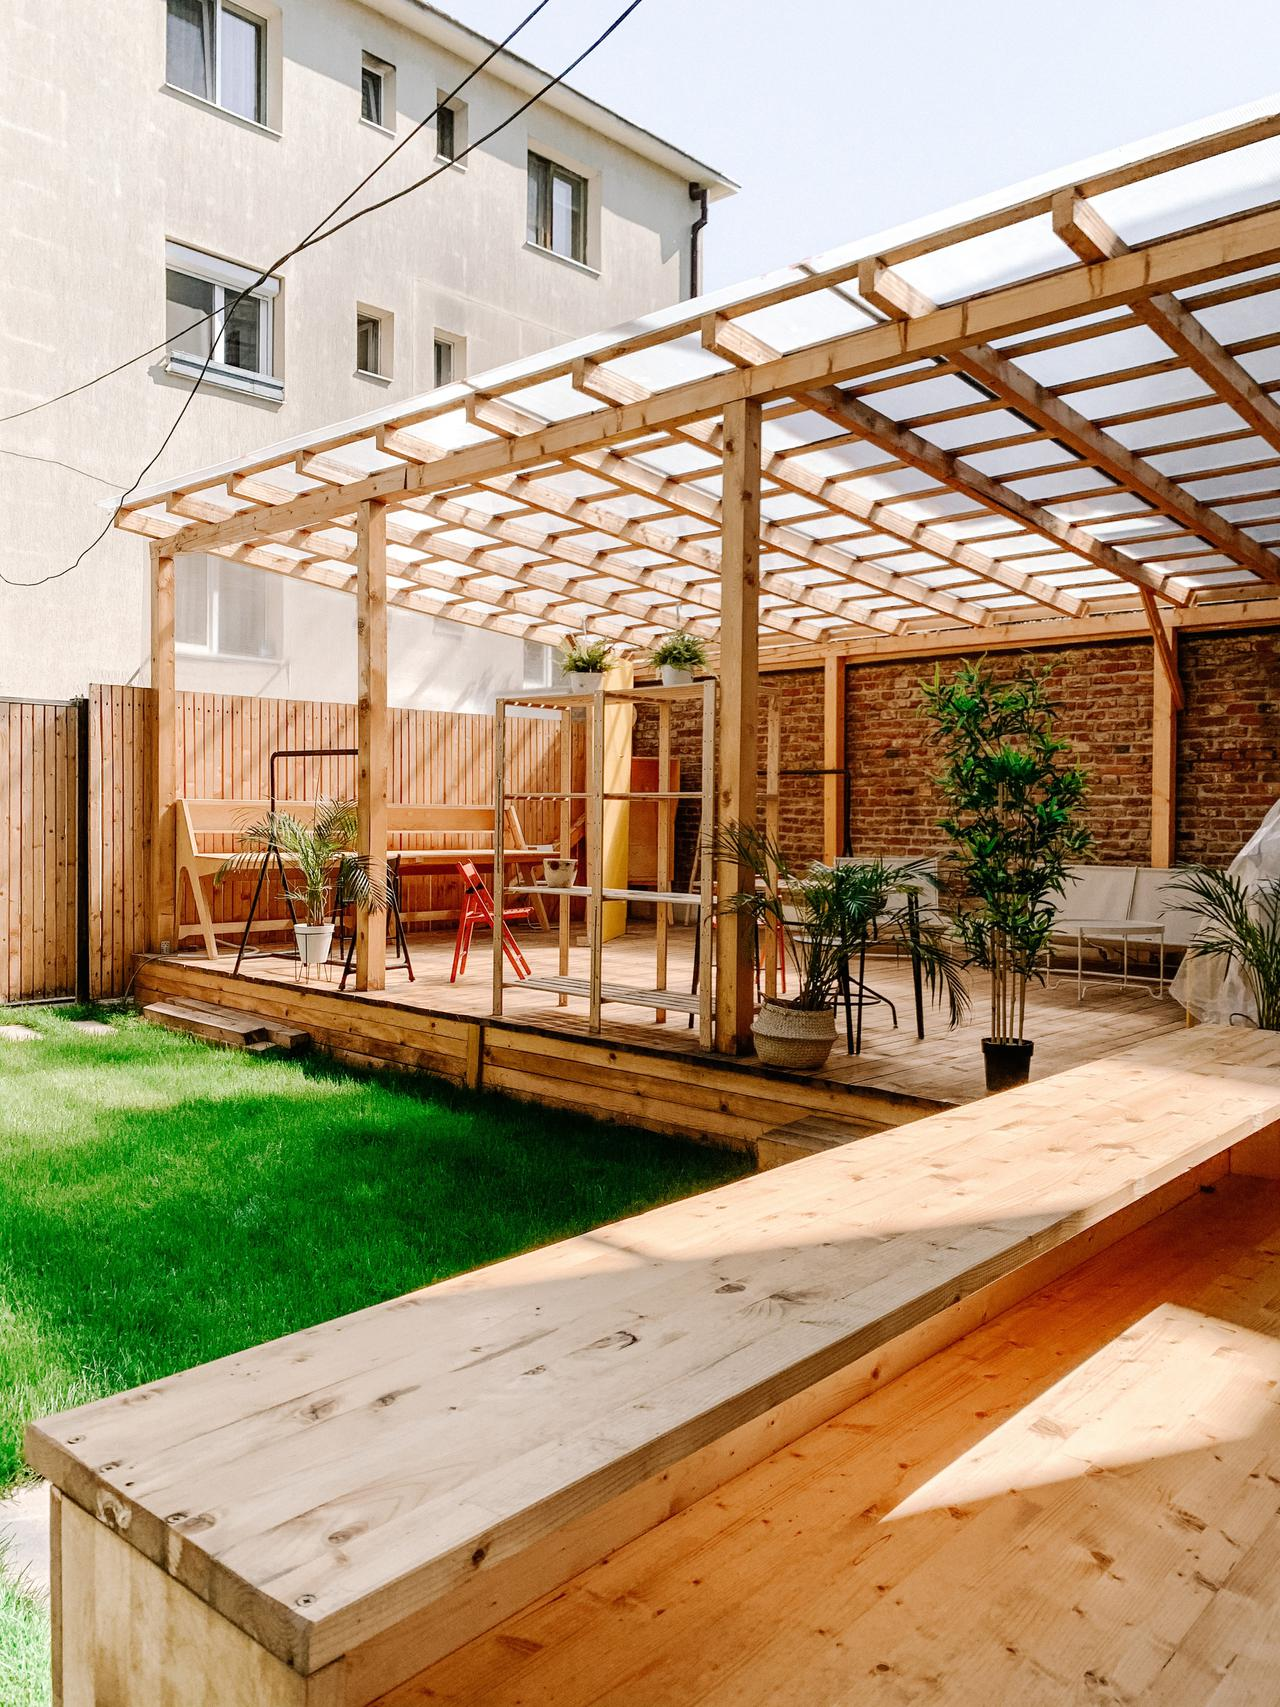 Work with Property Pros for great decks in Kansas City.